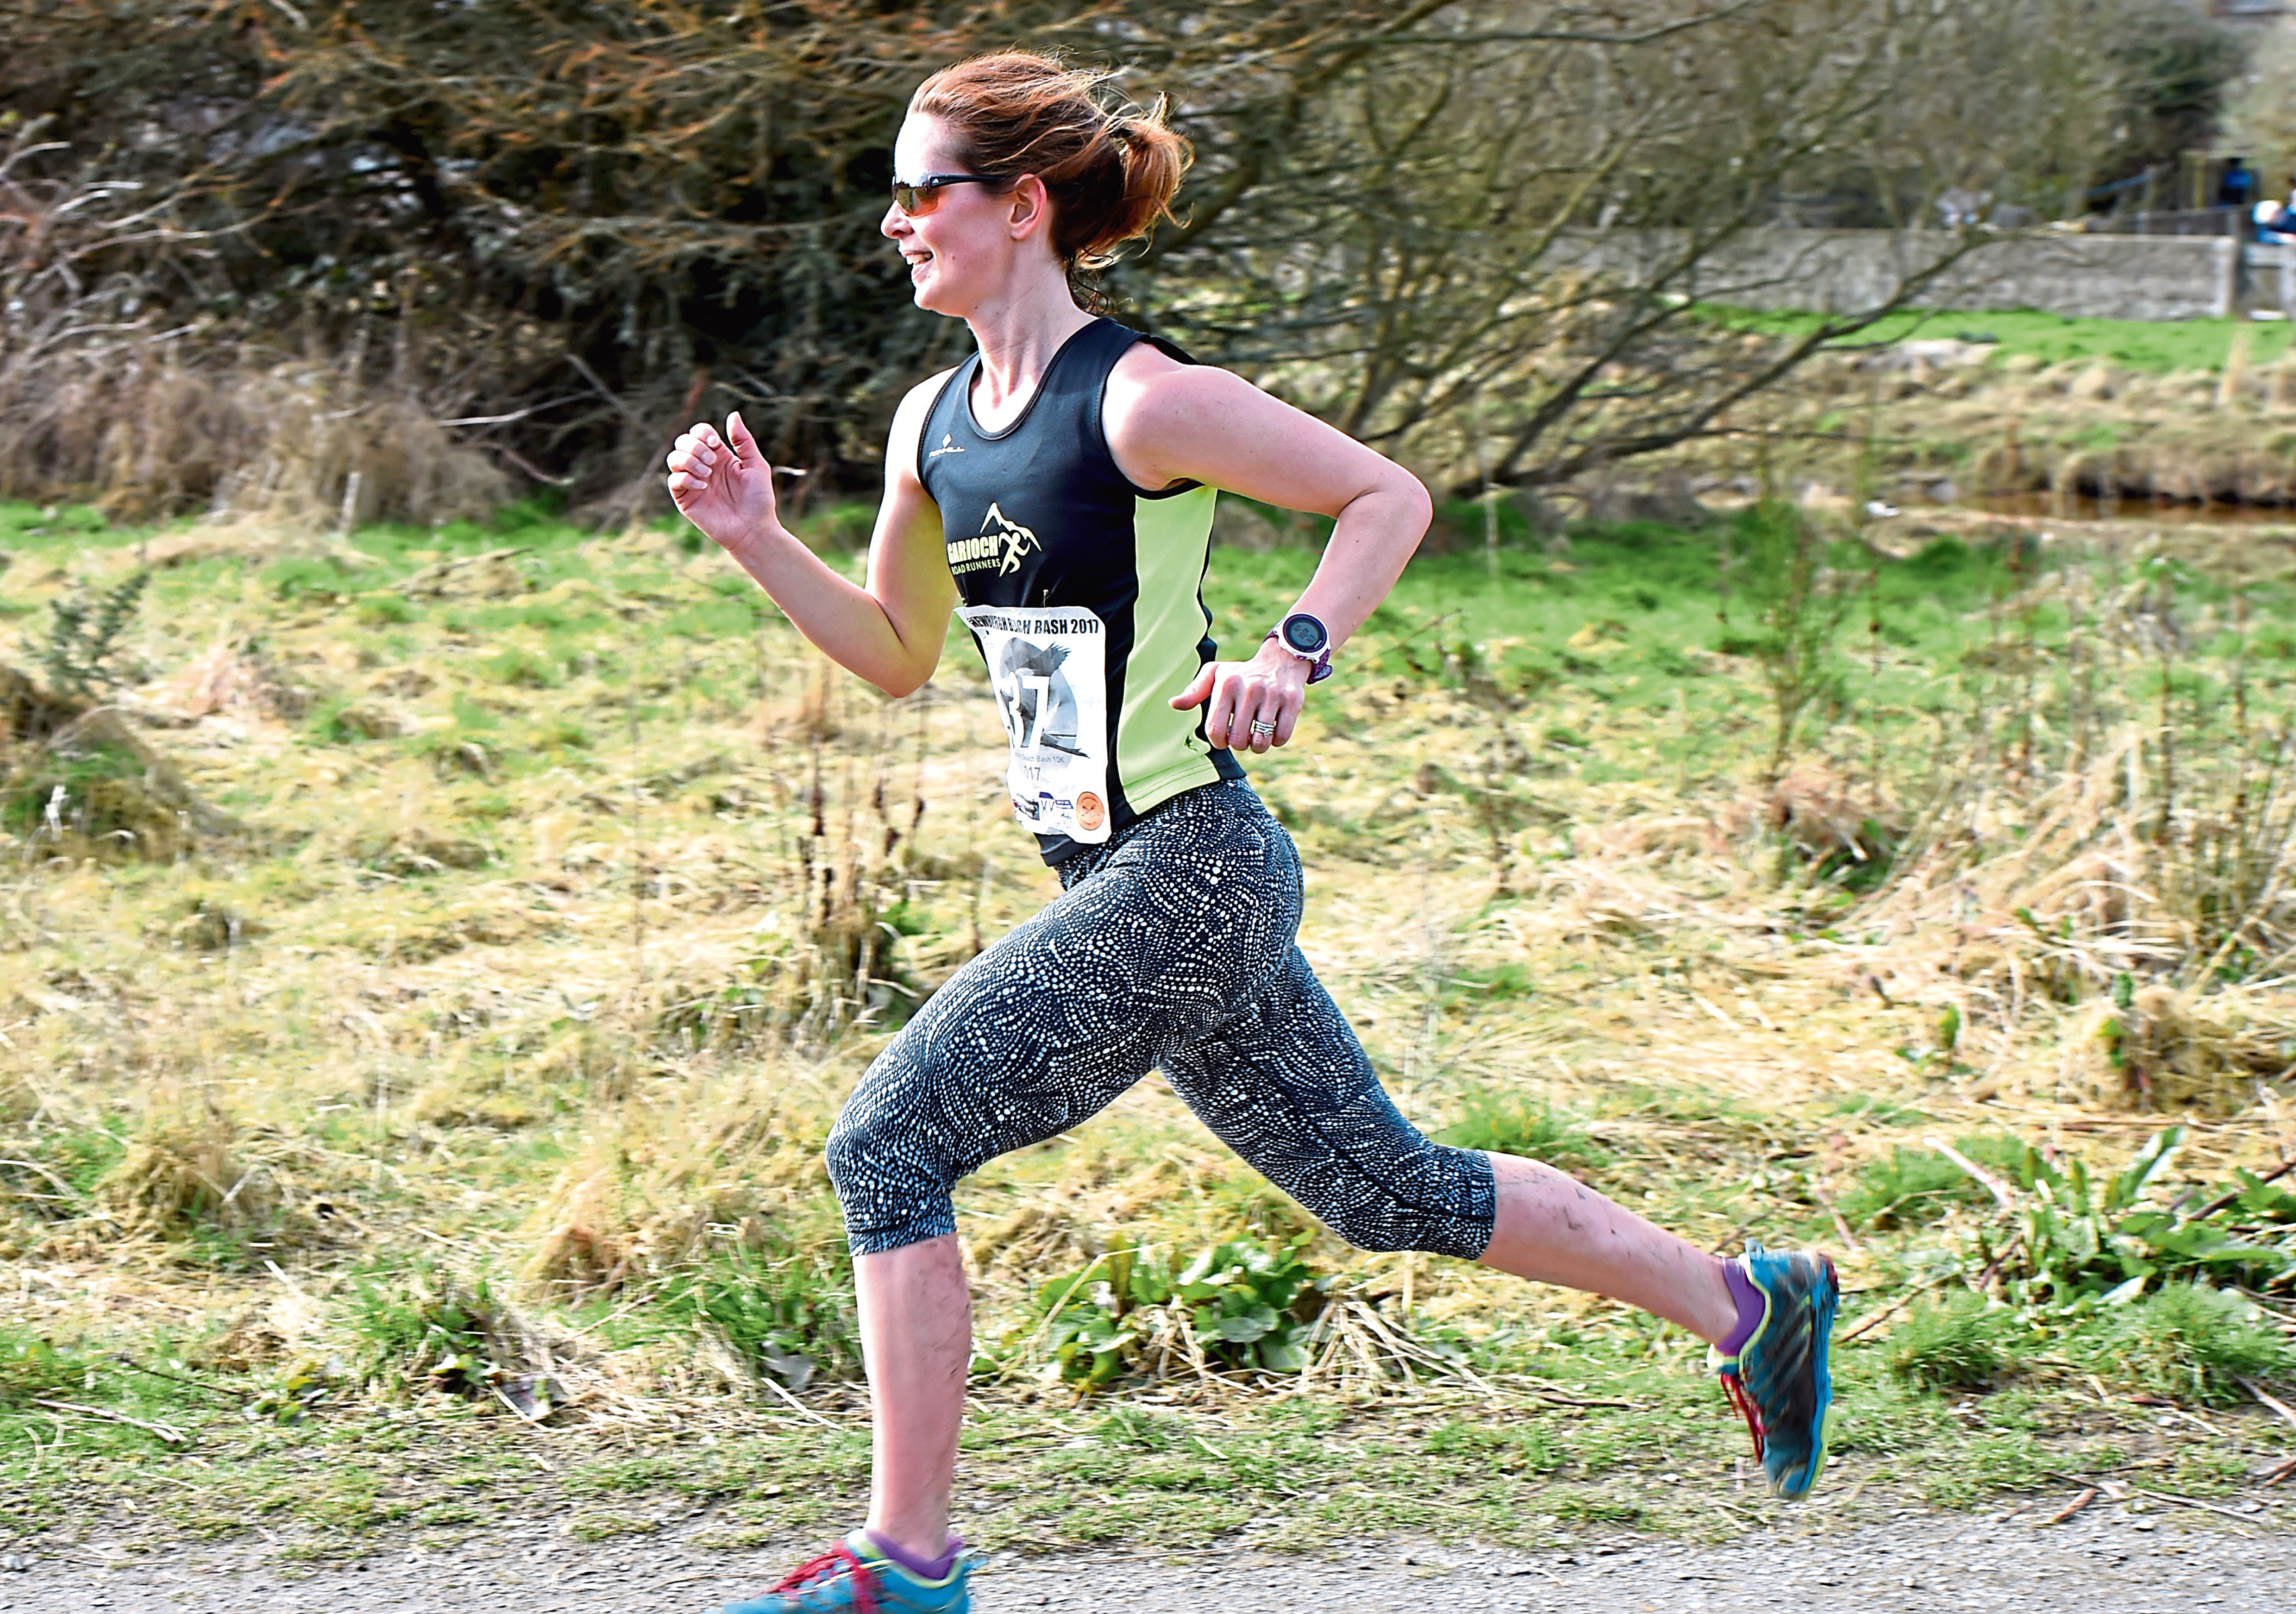 The Newbugh beach bash, 10K race. In the picture is 1st female runner, Tammy Wilson.   Picture by Jim Irvine  18-3-17